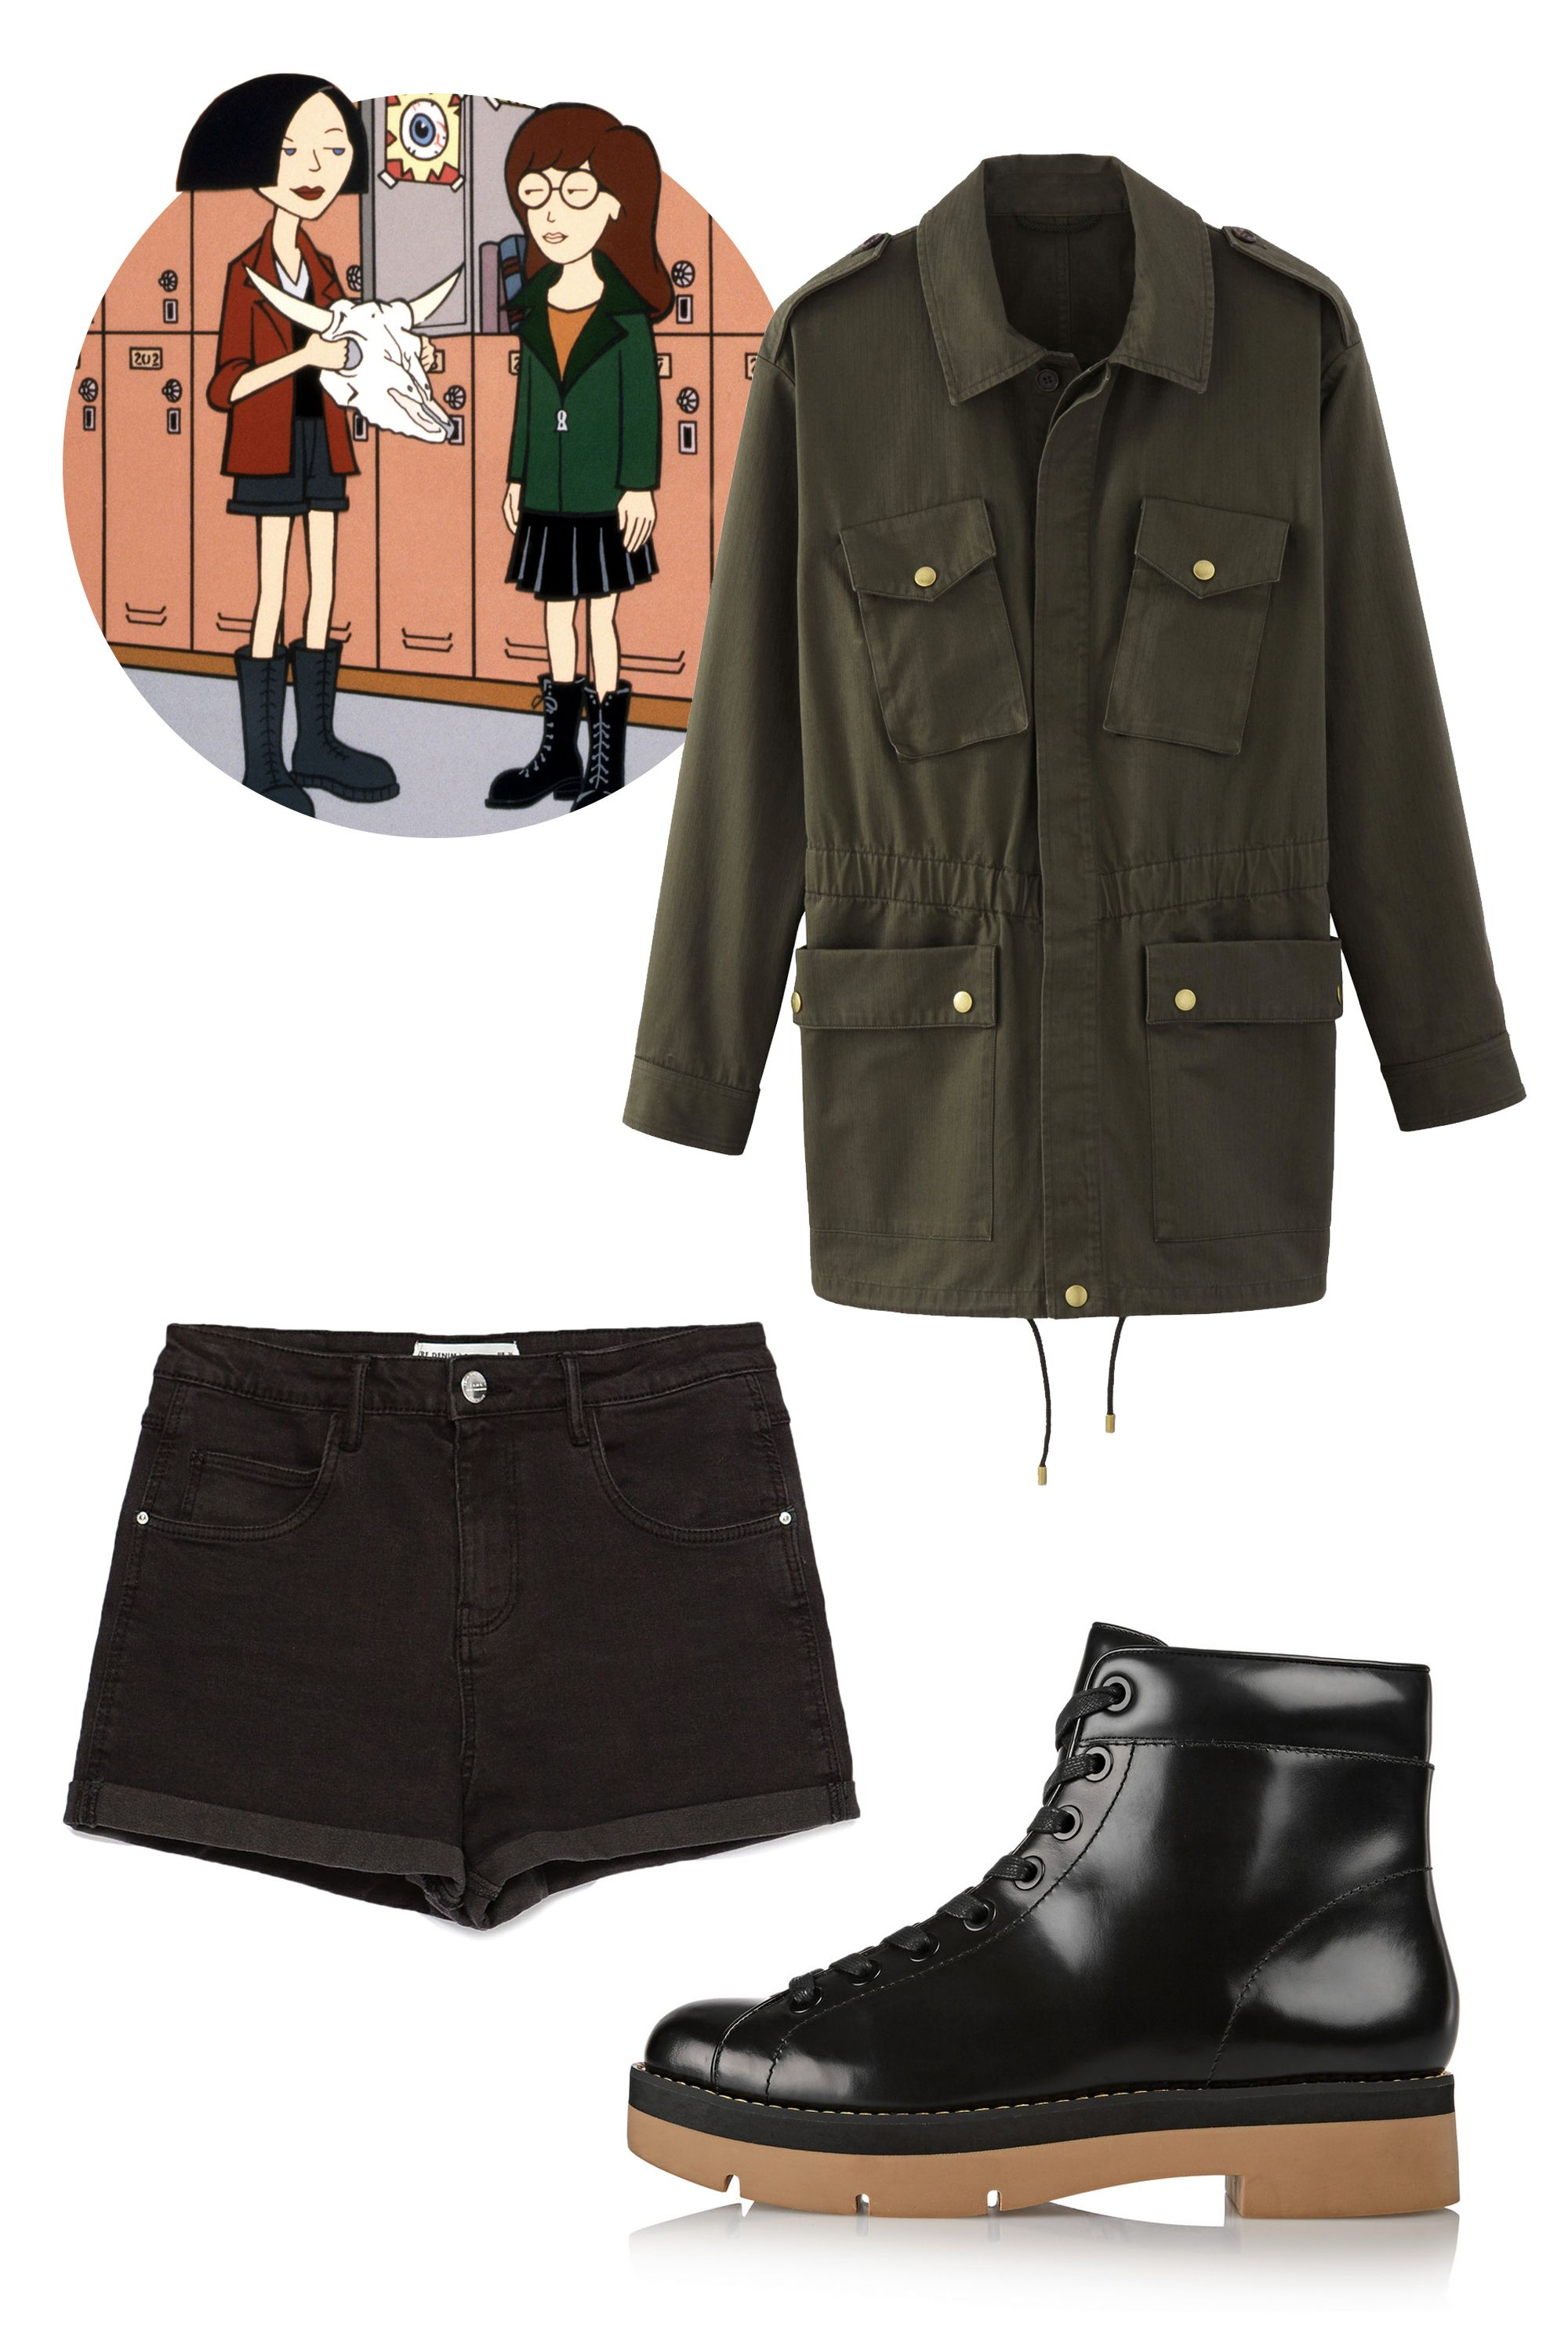 "A.P.C. Wild Parker, $495; <a href=""http://usonline.apc.fr/women/clothing/coats-parka/wild-parka-coawm-f30036#Military khaki&22"">apc.fr</a>  Zara High Waist Shorts, $26; <a href=""http://www.zara.com/us/en/collection-aw15/woman/shorts/high-waist-shorts-c733903p2774267.html"">zara.com</a>  Alexander Wang Genevieve Patent Leather Ankle Boots, $595; <a href=""http://www.net-a-porter.com/us/en/product/568288"">net-a-porter.com</a>"